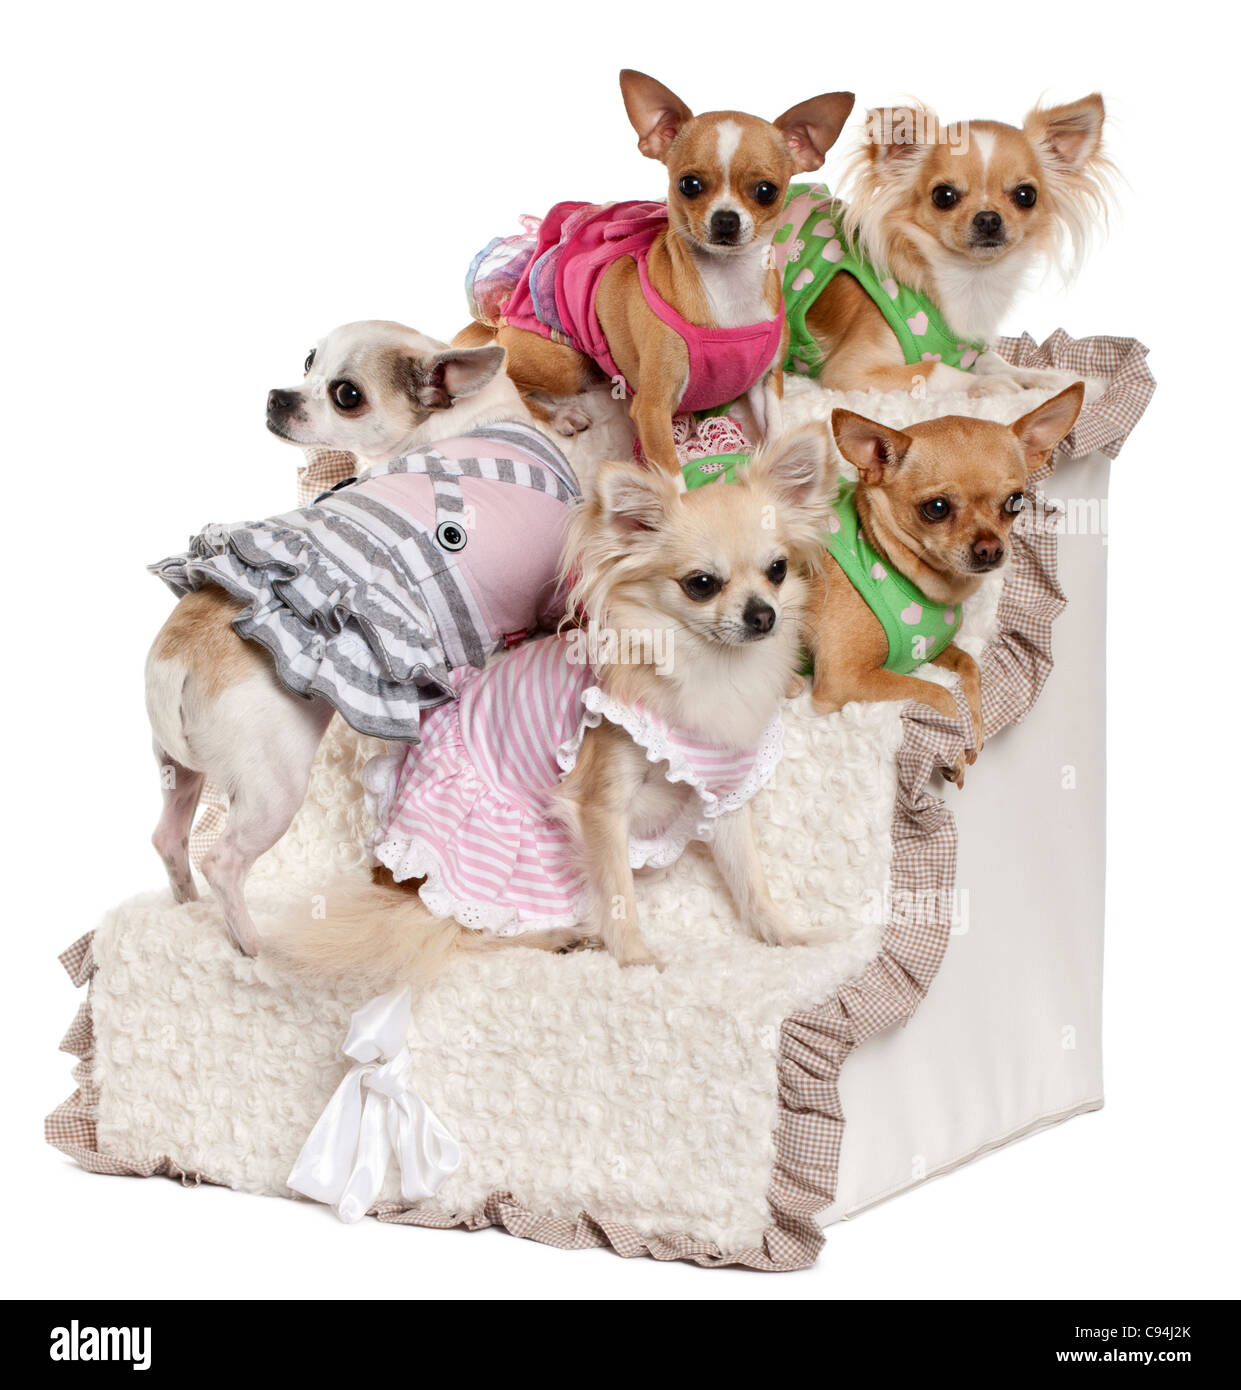 Five Chihuahuas sitting on steps in front of white background - Stock Image